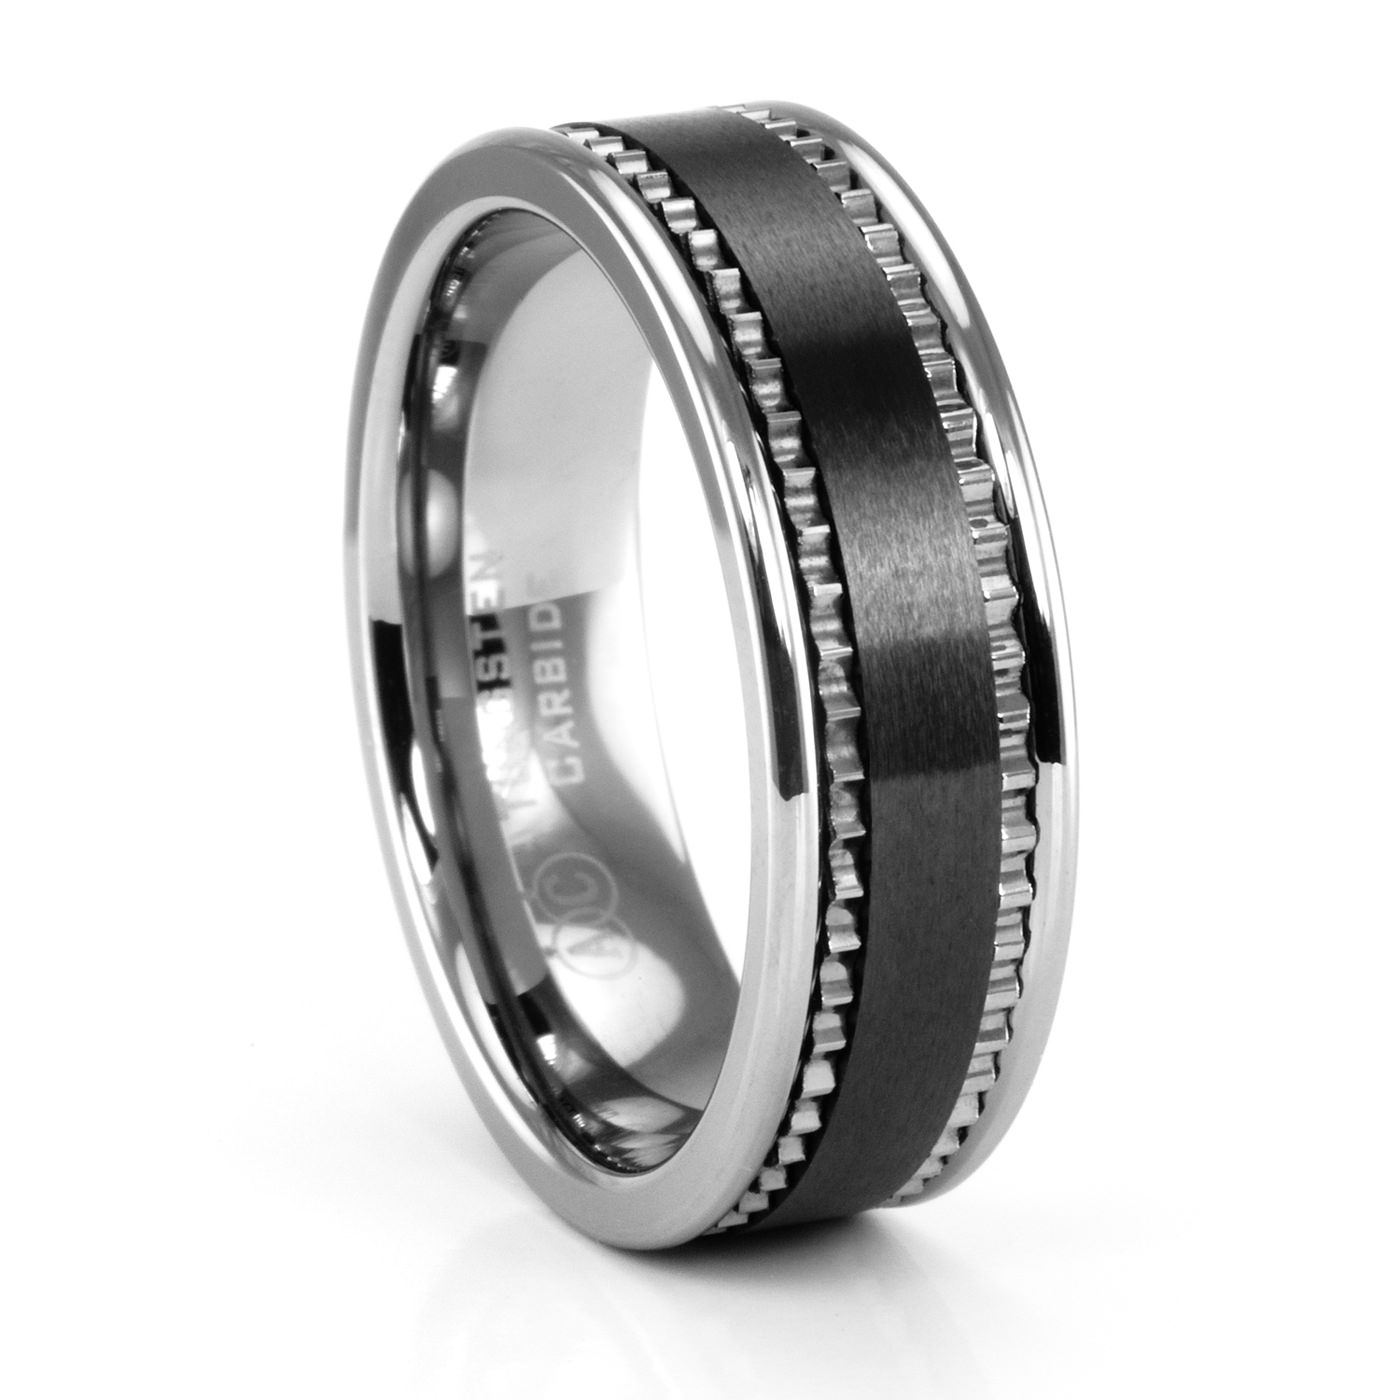 finish grooved jewelry wry ring bands wedding polished band bling black polish mens matte weddingband tungsten fj